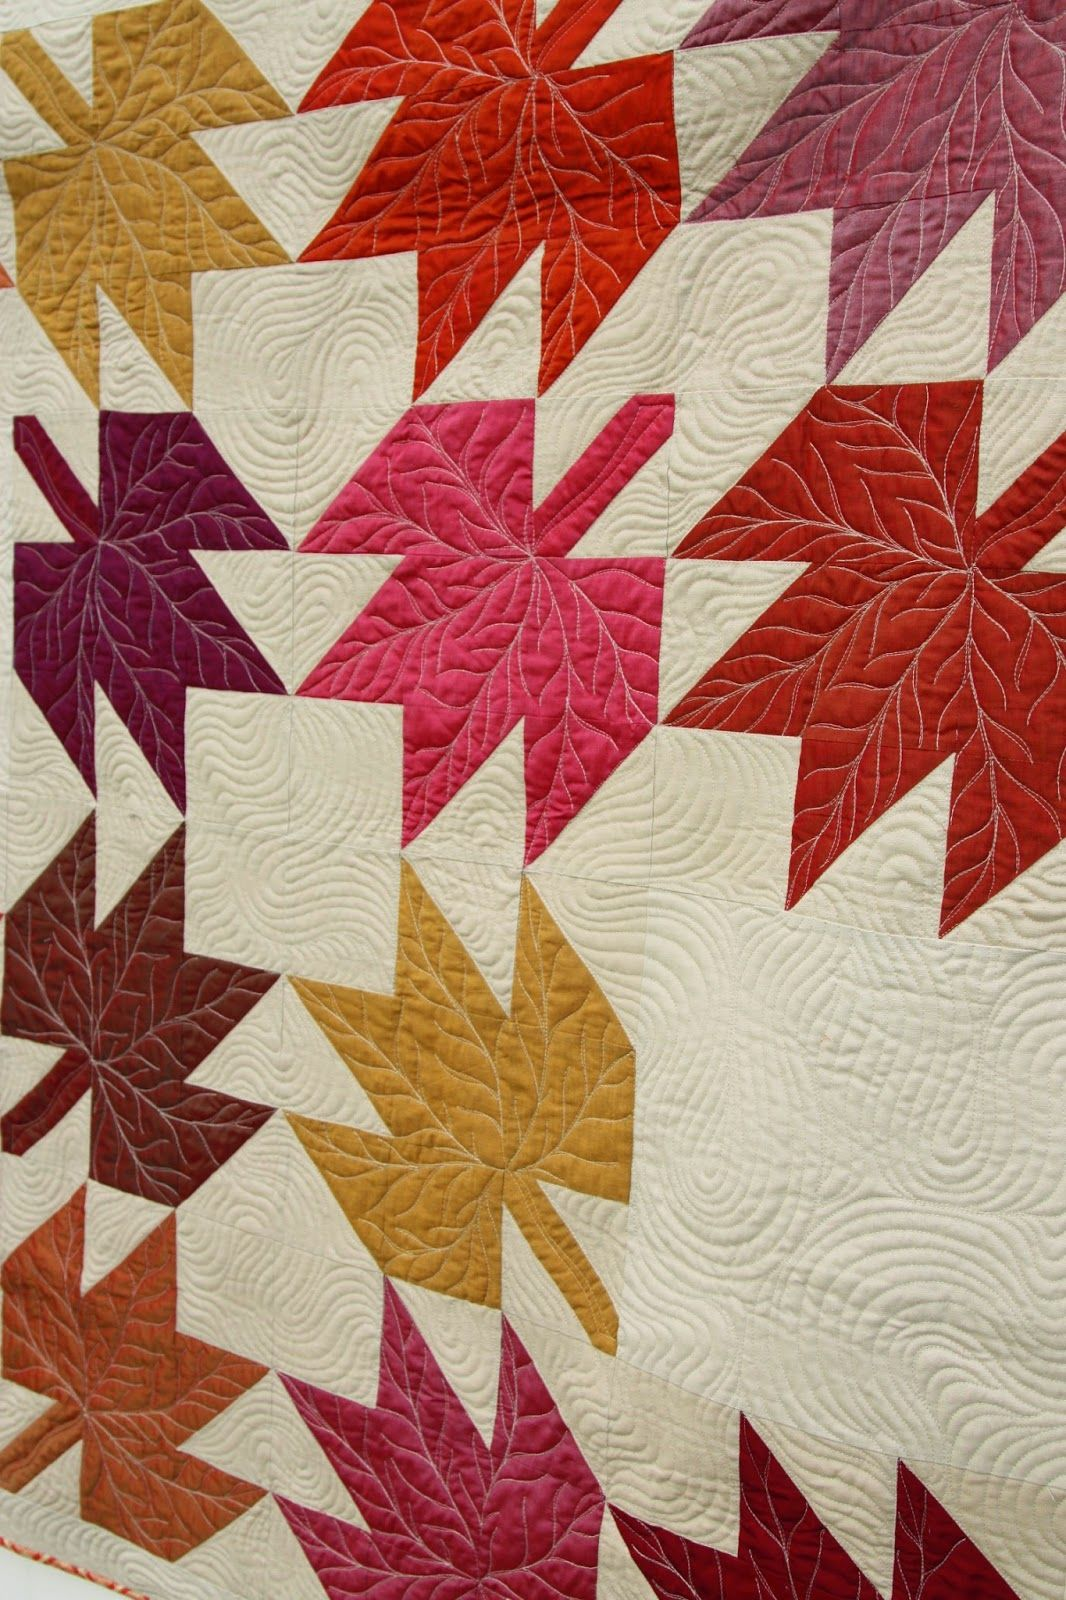 Quilt Pattern For Maple Leaf : Modern Maples Quilt Diaries, Leaves and Amy smart